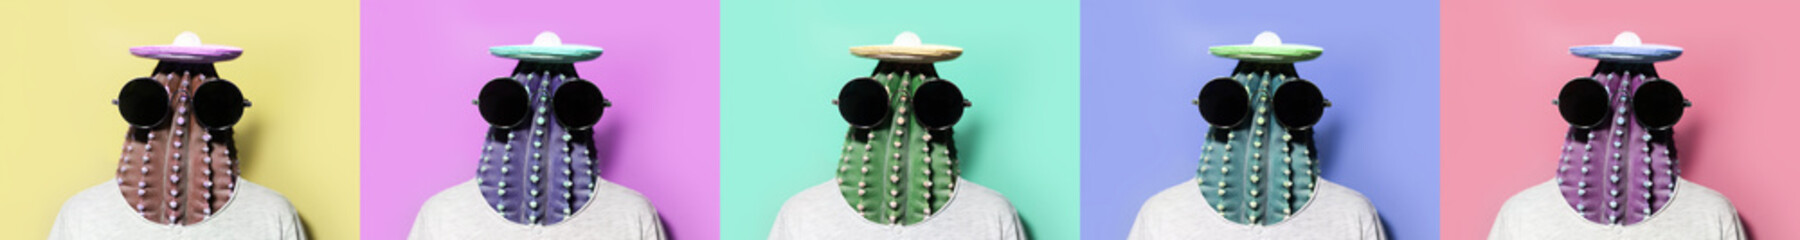 Minimal pop-art collage portraits of green cactus-headed man wearing black round shades and mexican hat on colorful backgrounds.